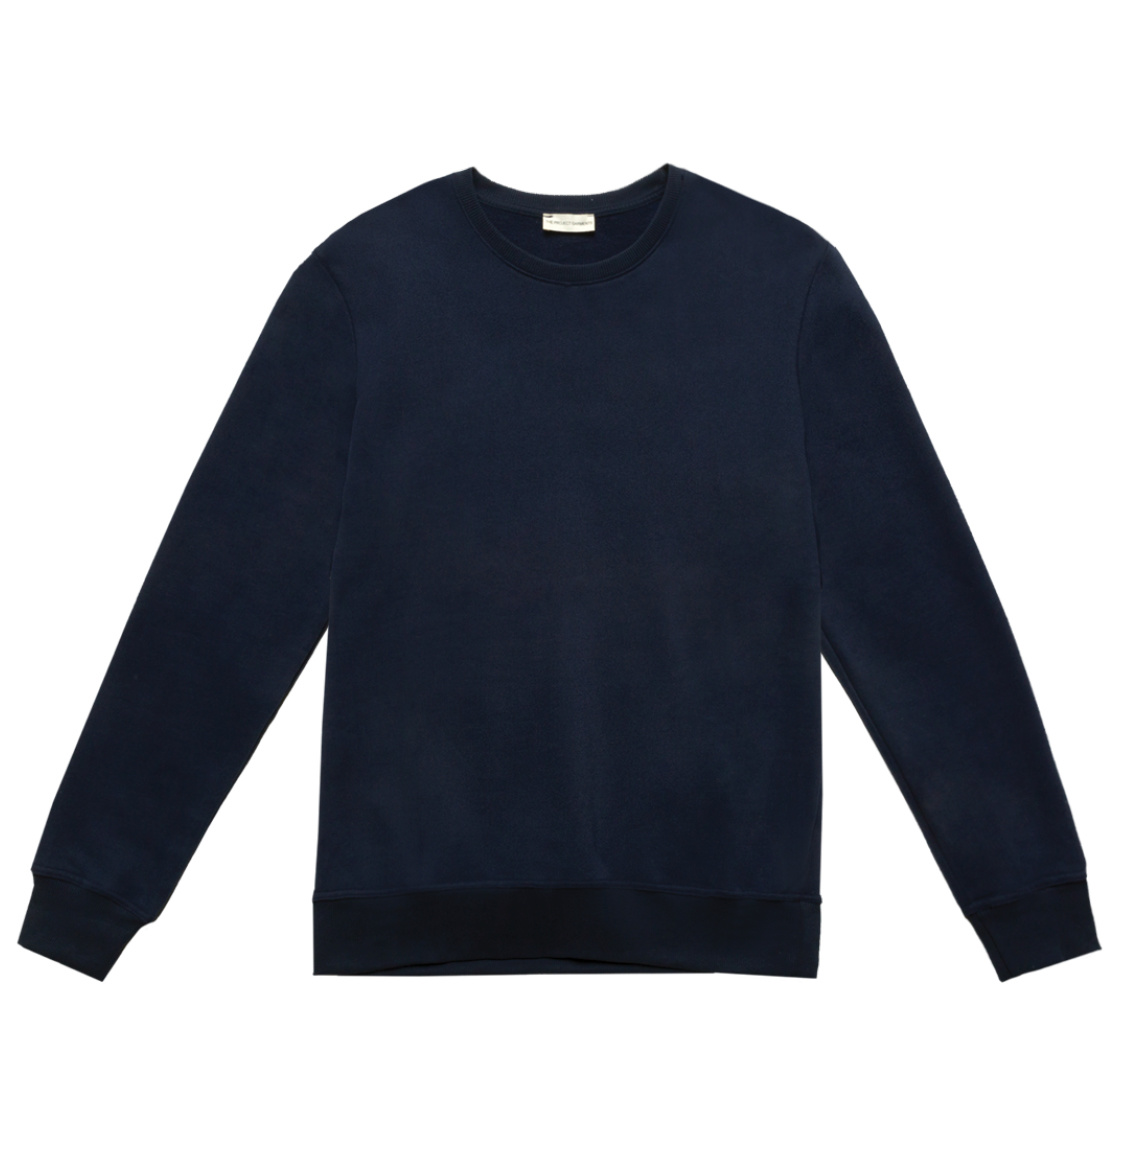 Crew Neck Sweatshirt Navy Blue